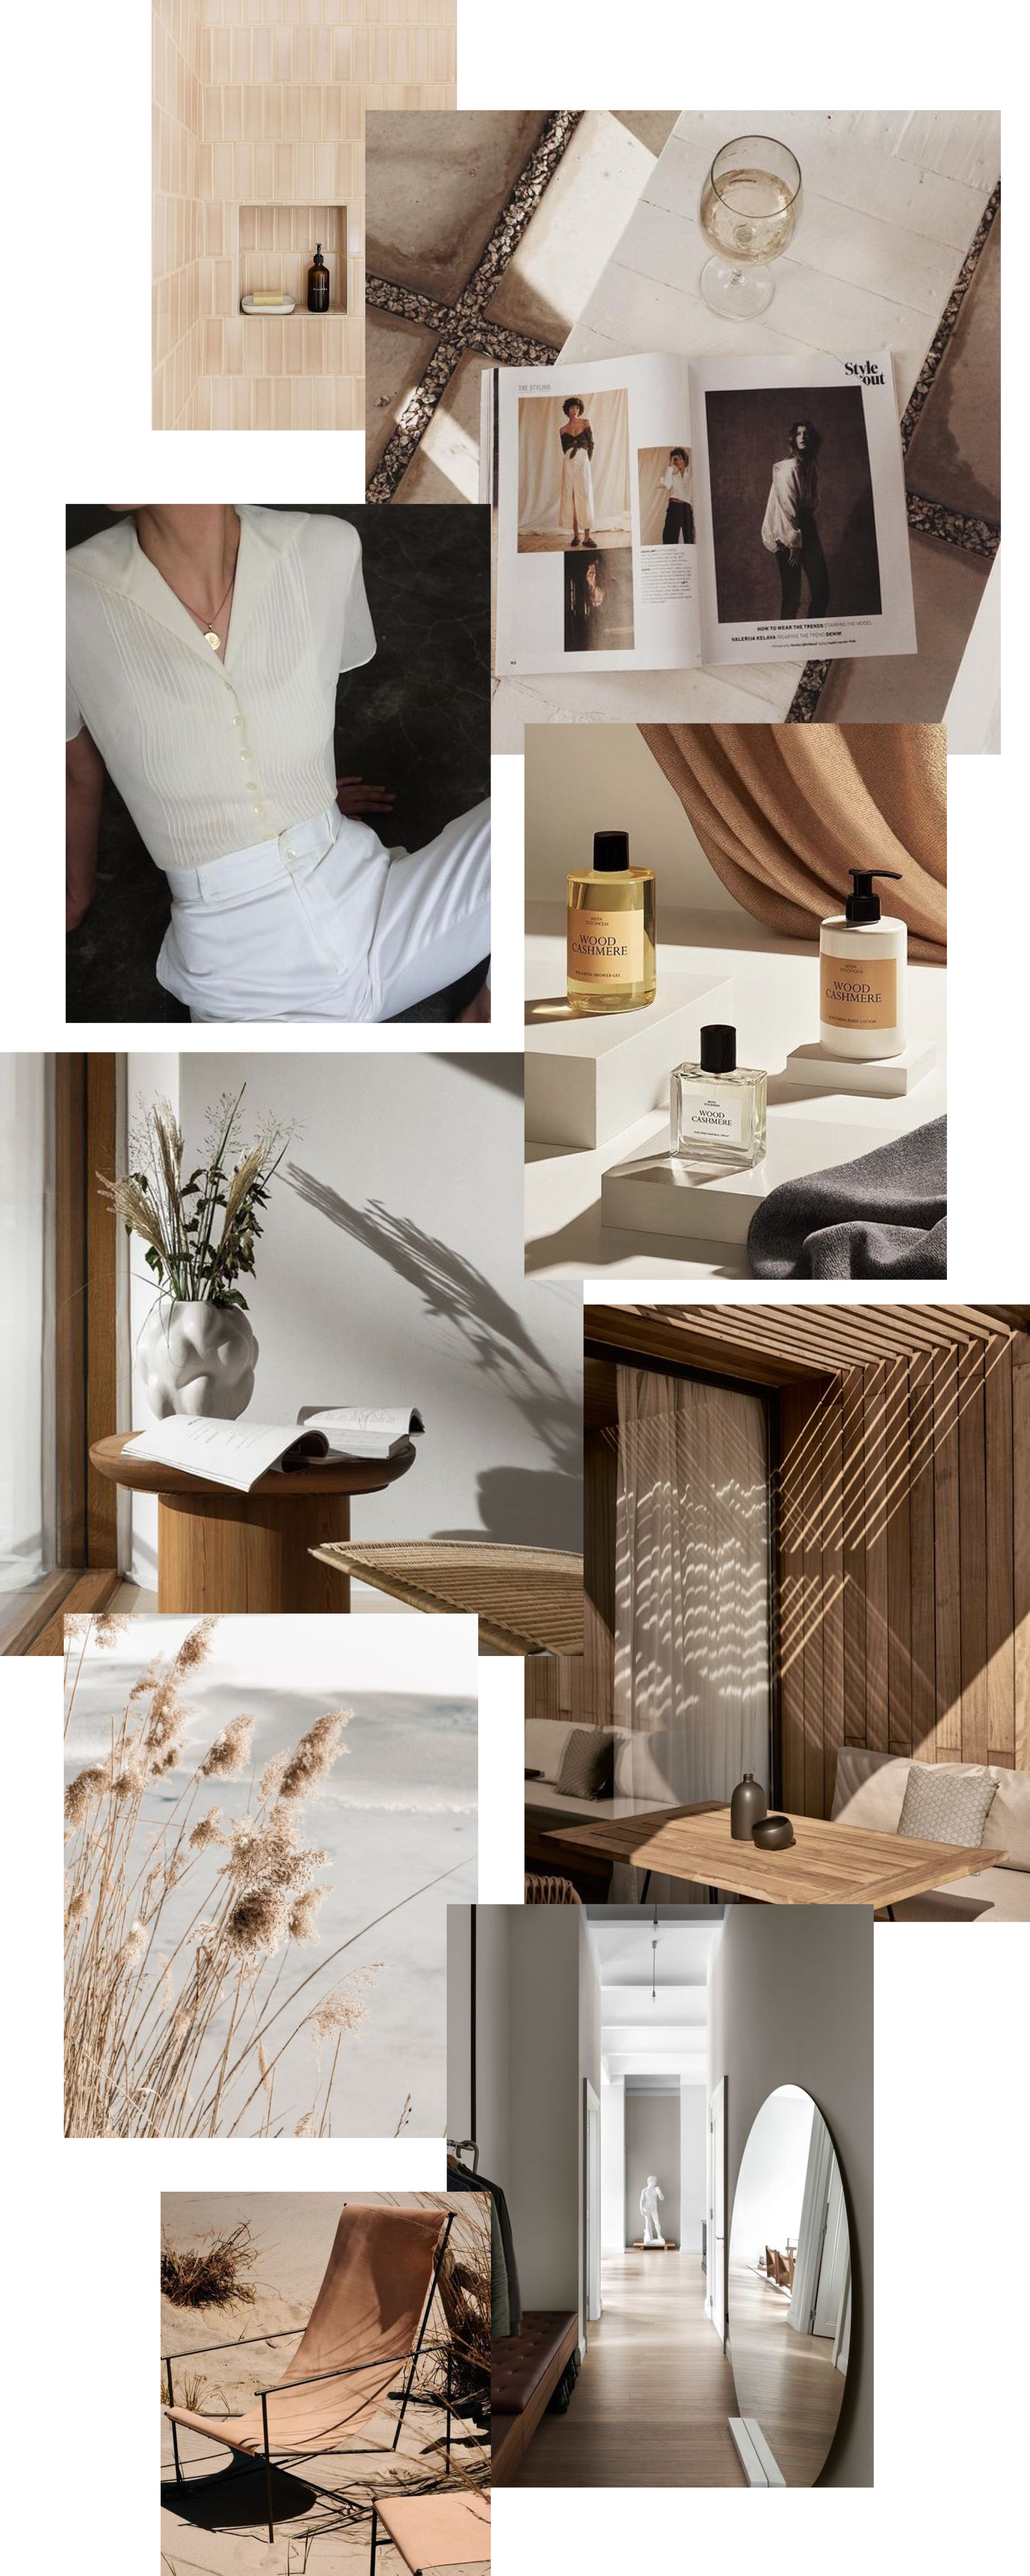 Dreamy Beige Aesthetic Pinterest Inspiration Rg Daily